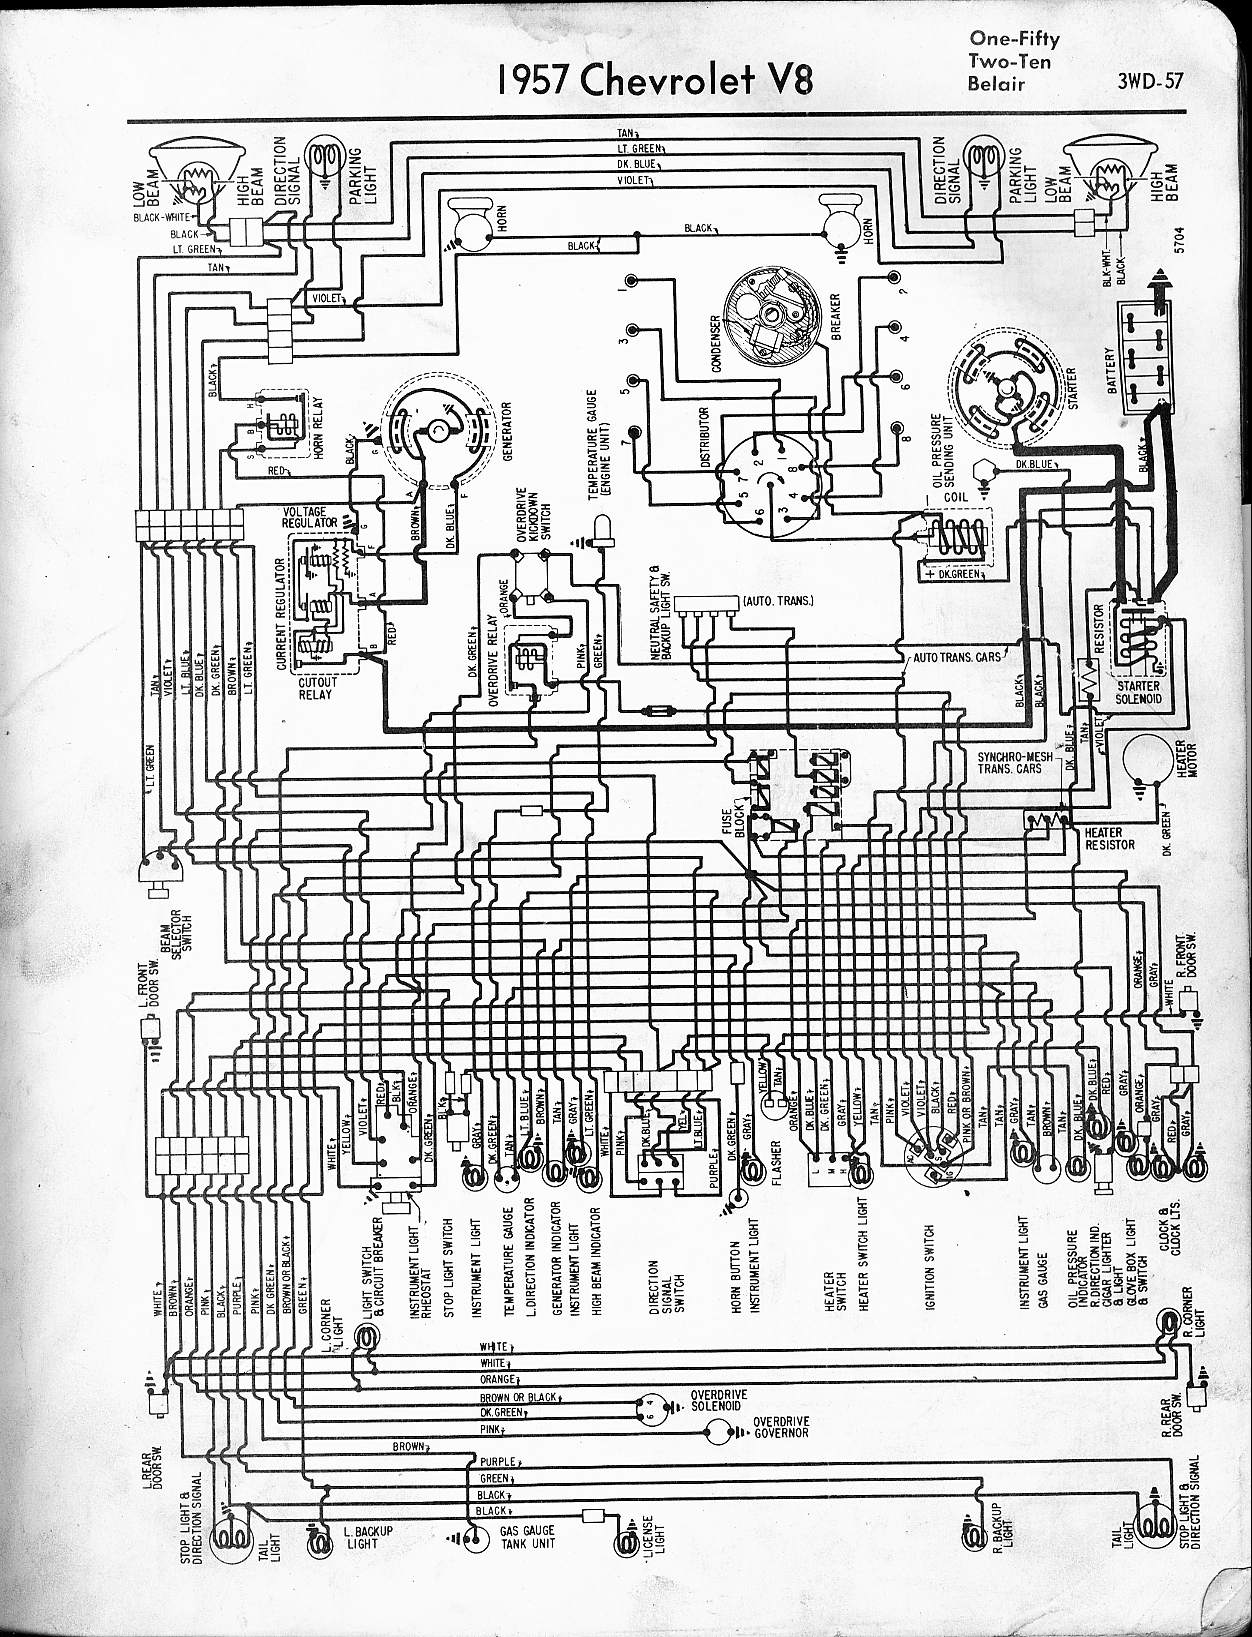 MWireChev57_3WD 057 1955 chevy wiring diagram 1955 pontiac wiring diagram \u2022 free 57 Chevy Wiring Diagram at soozxer.org